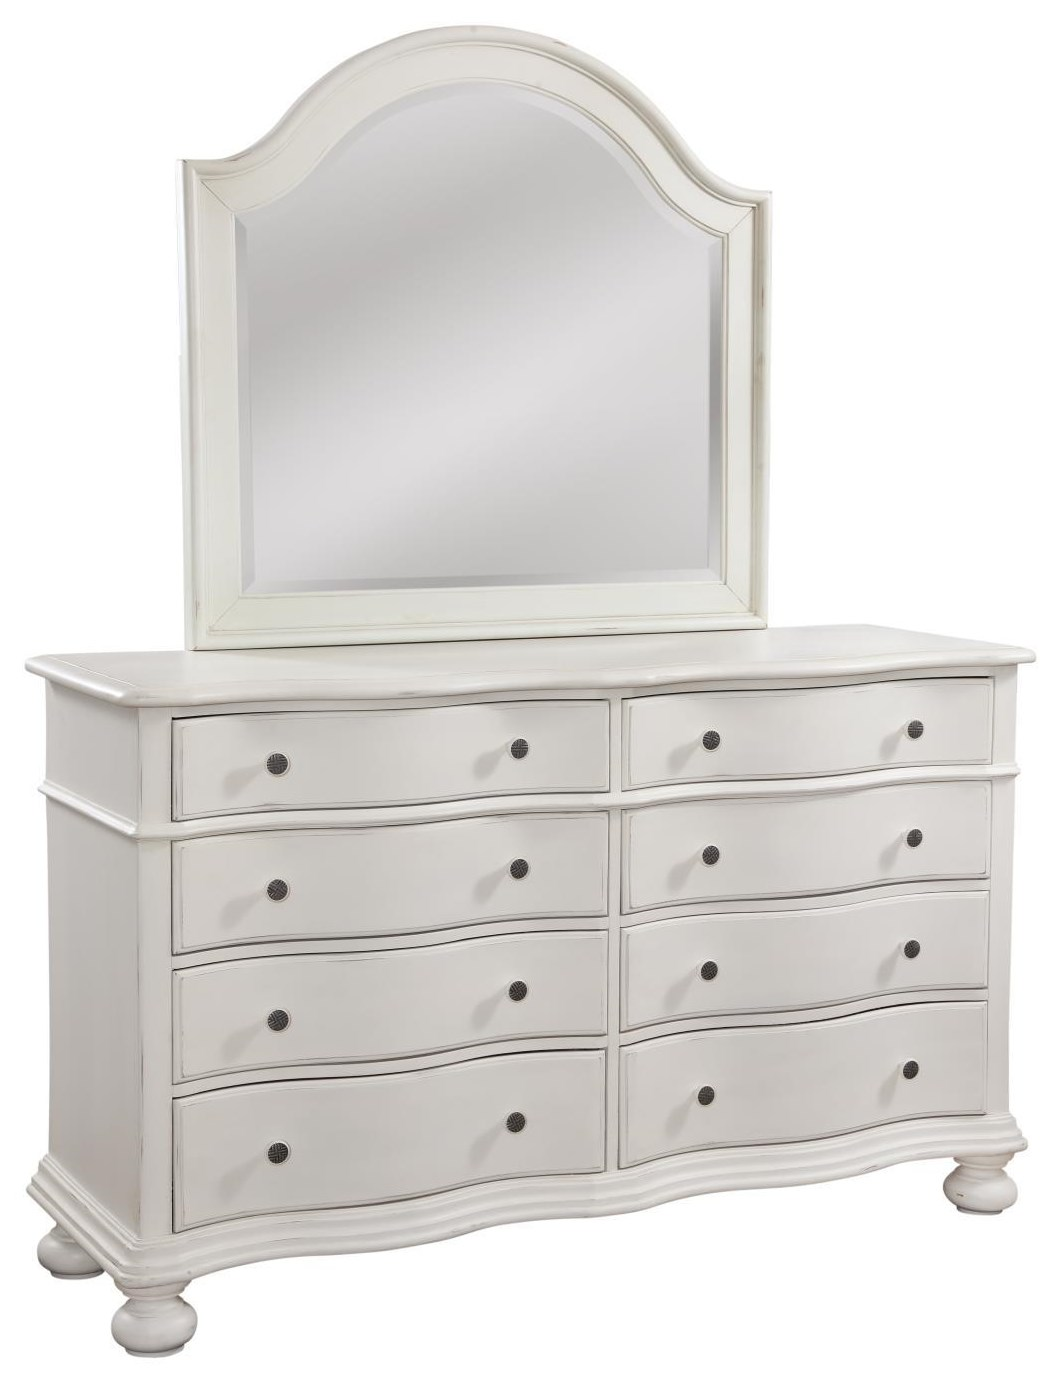 3910 Rodanthe Bedroom DRESSER by American Woodcrafters at Furniture Fair - North Carolina